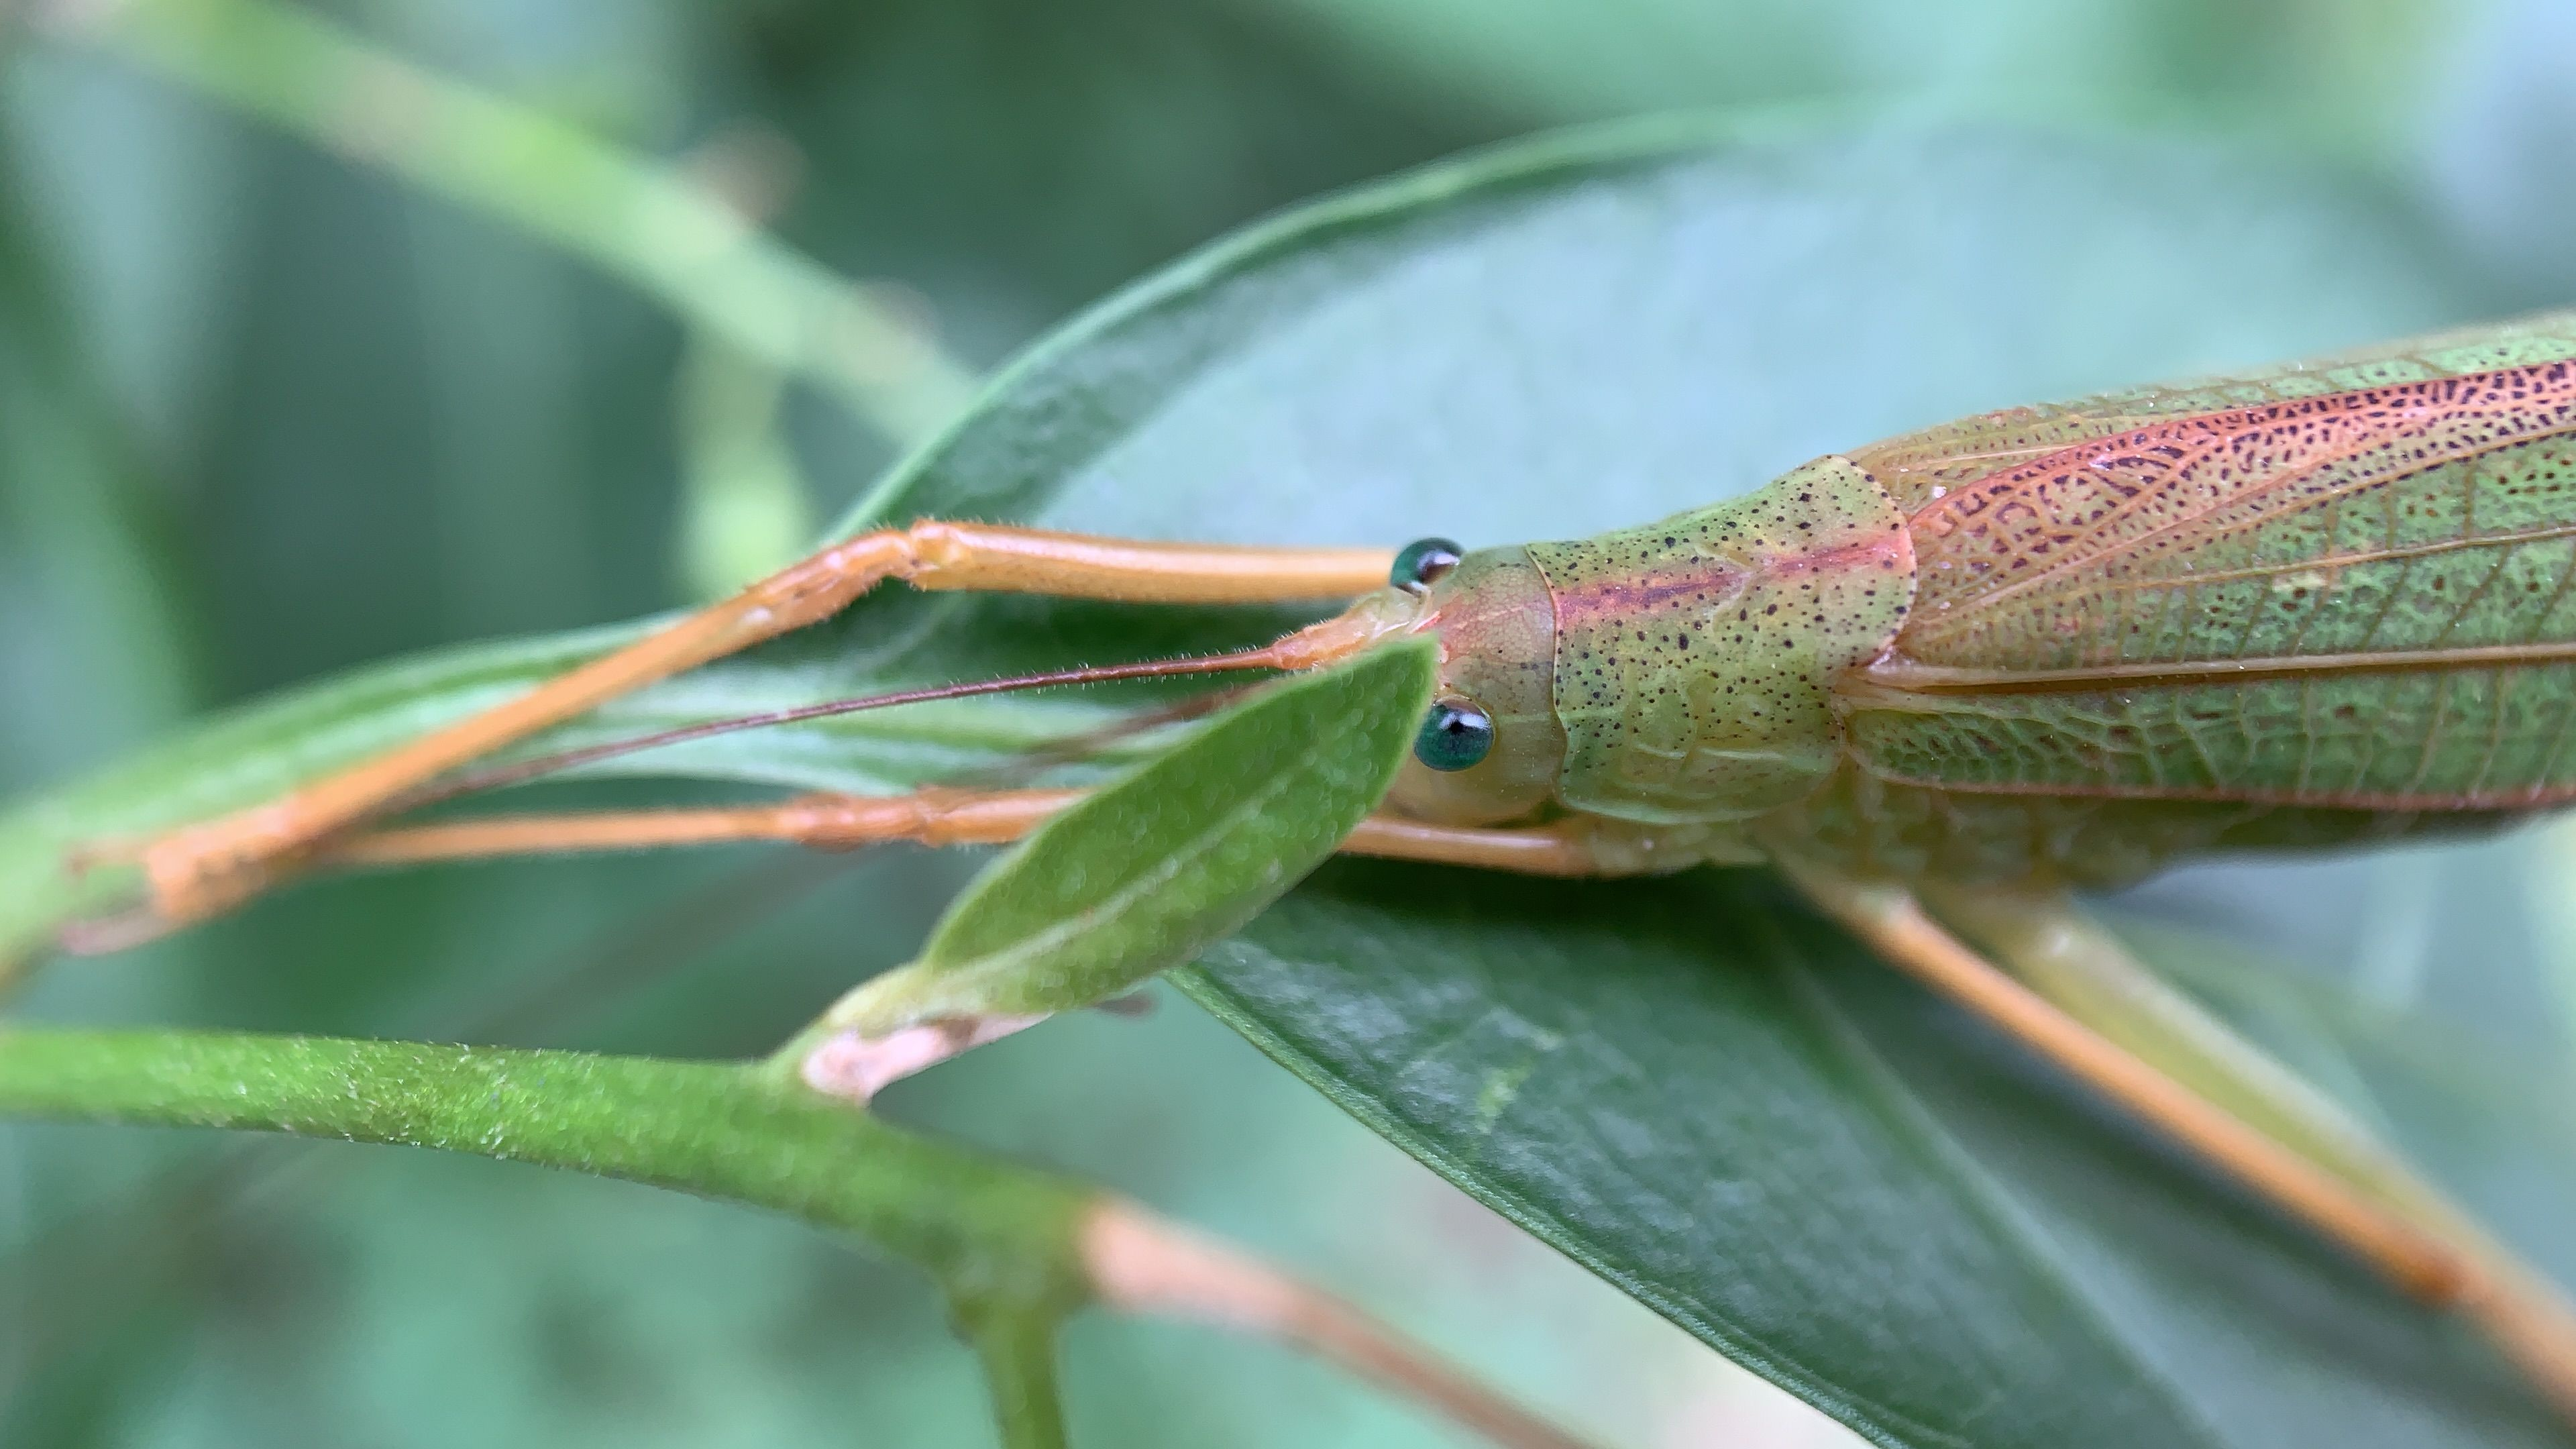 A Grasshopper On A Leave By The Hd Macro Lens For Iphone